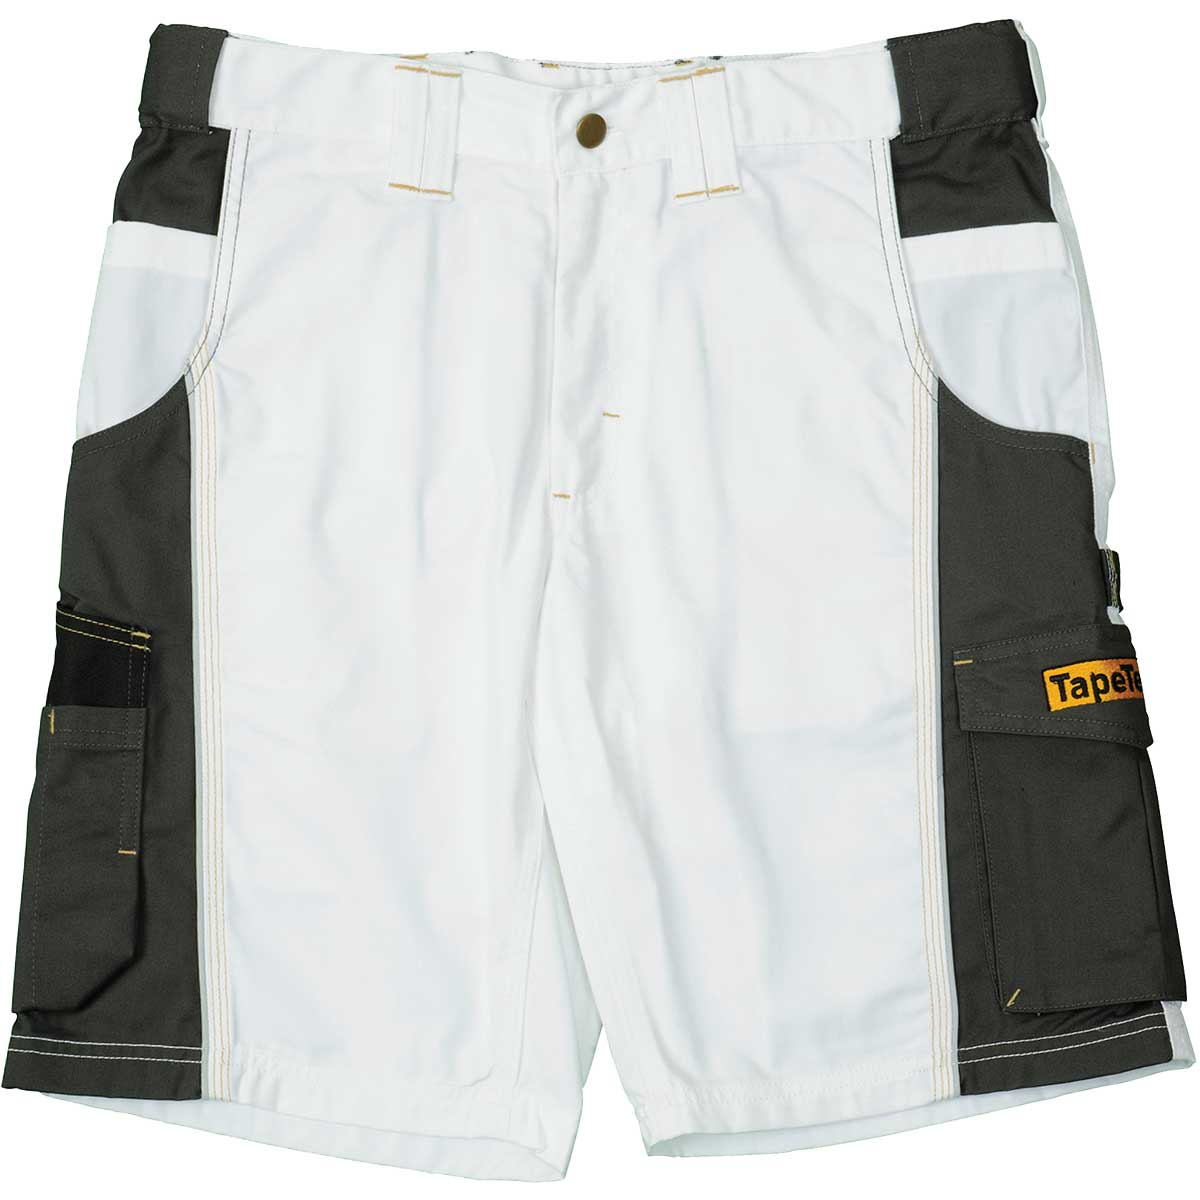 TapeTech Premium Work Shorts Size - 54